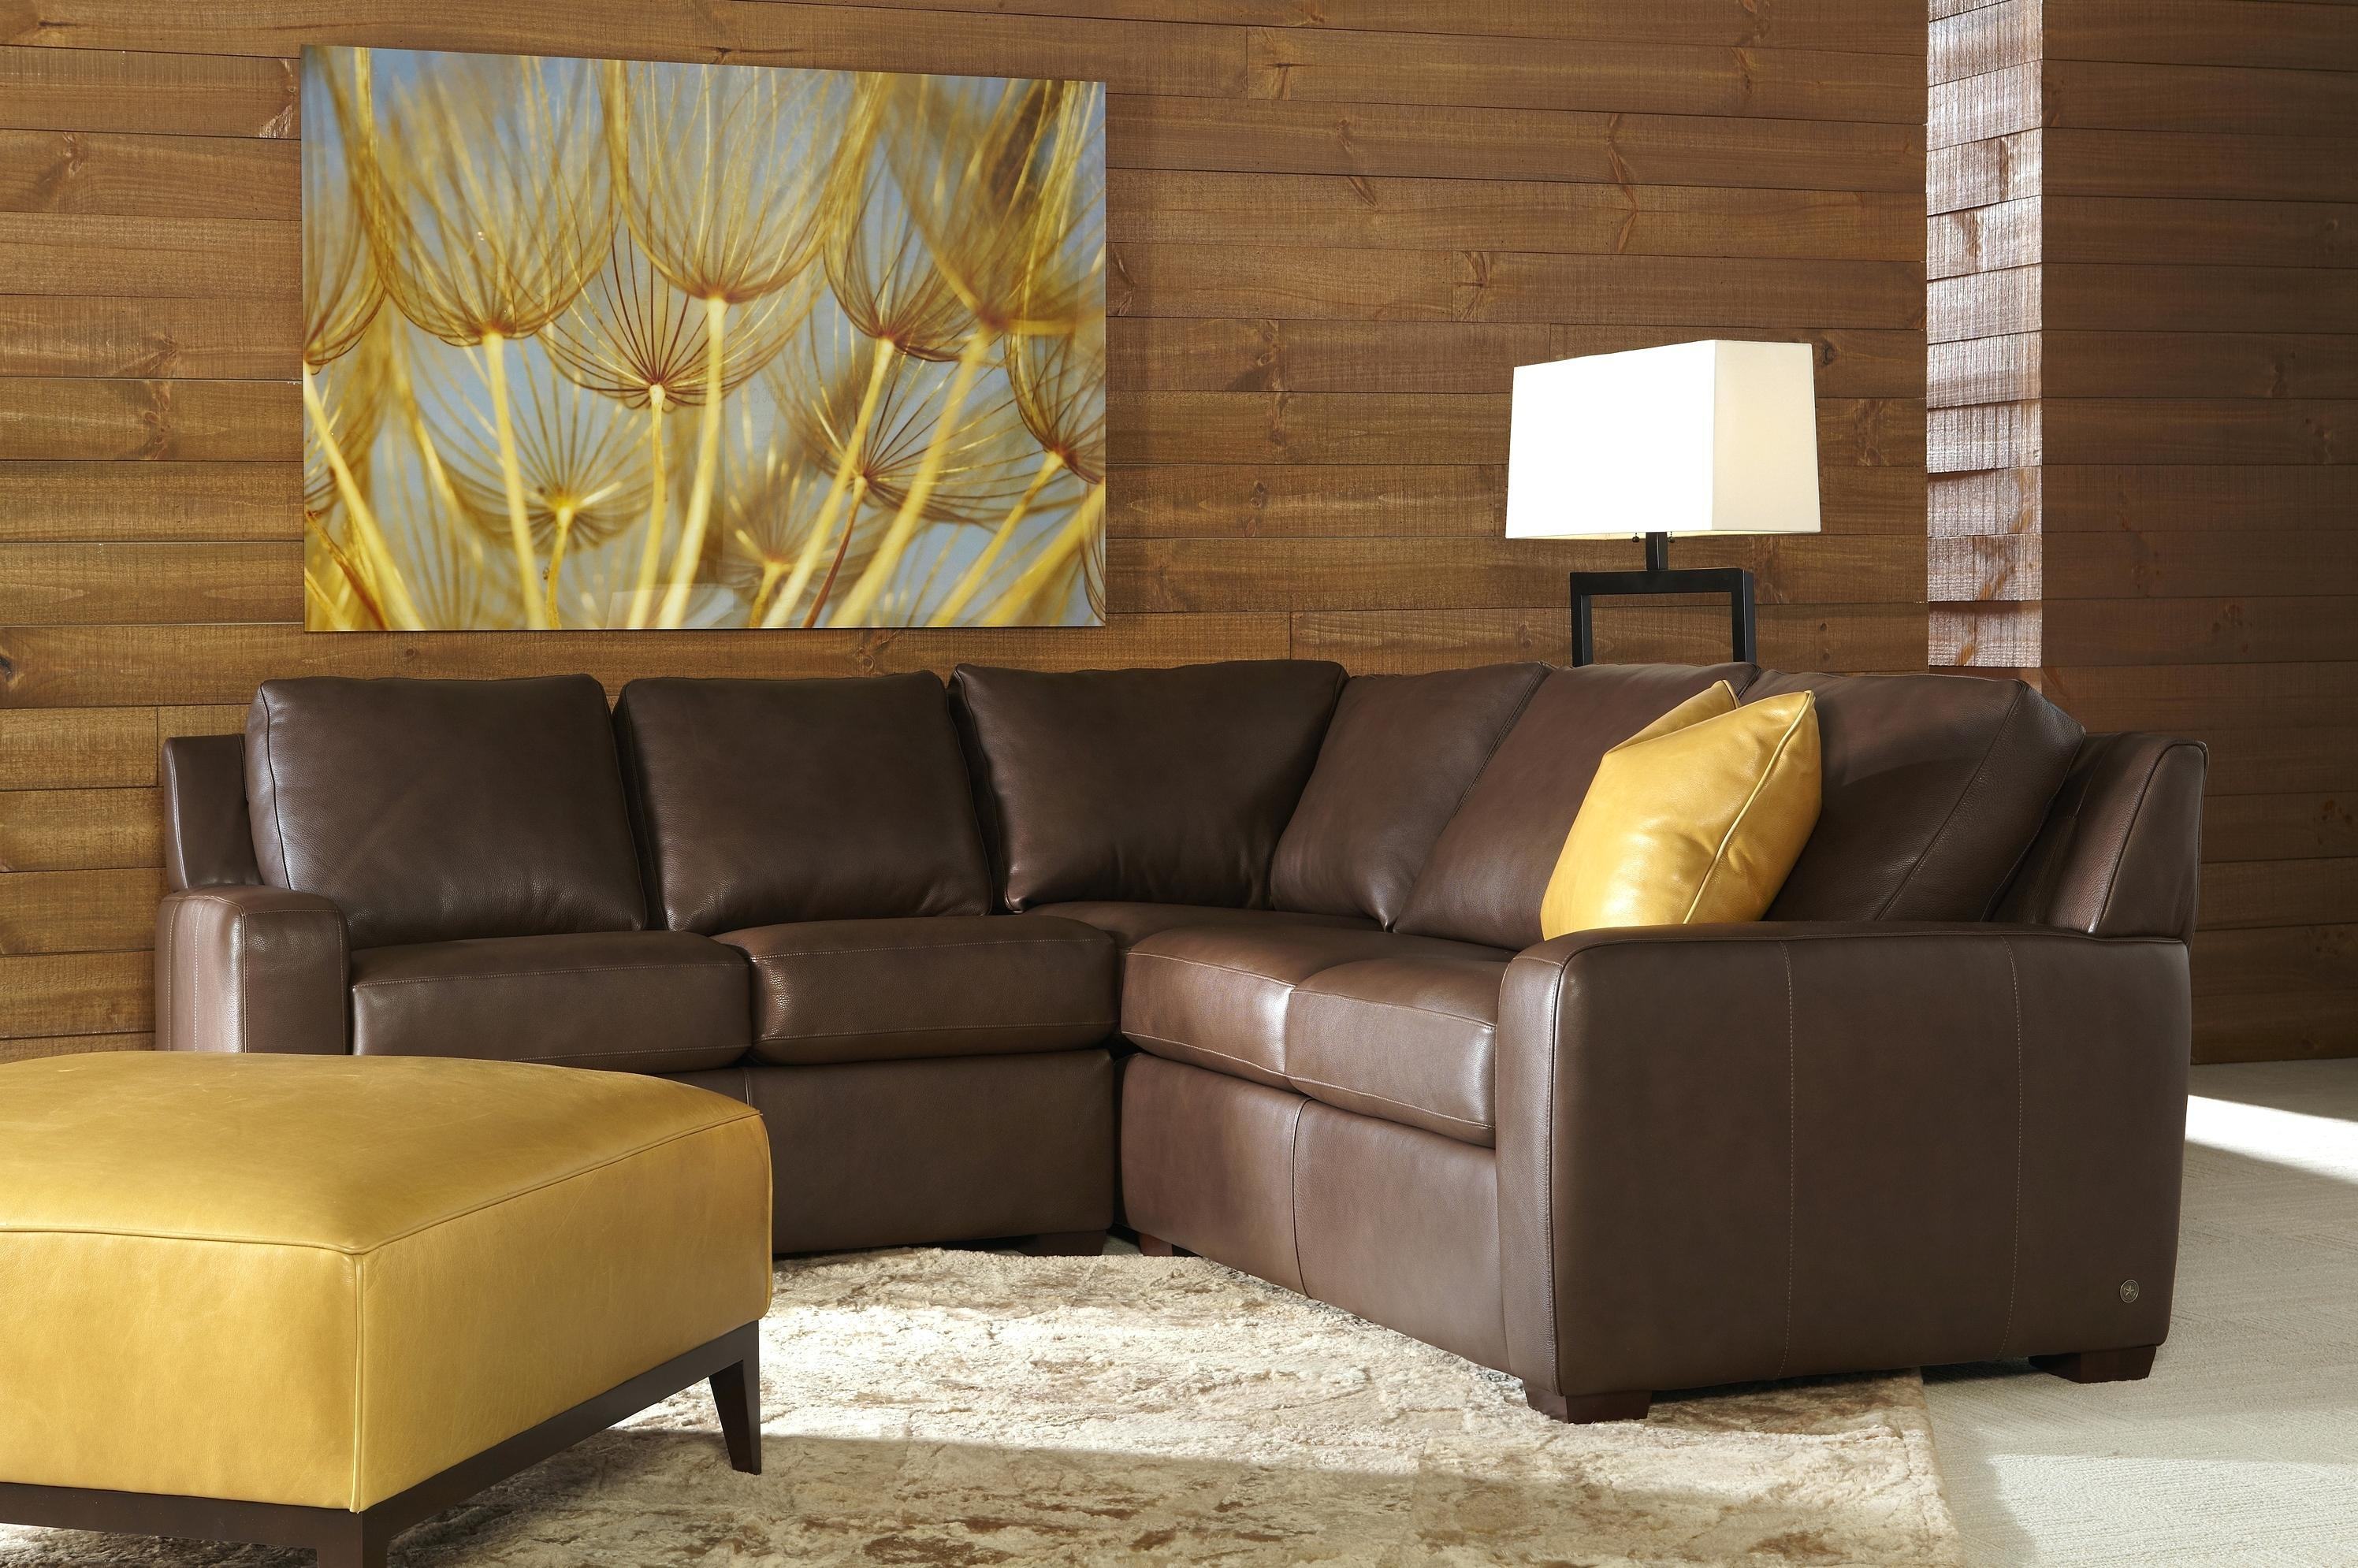 Sectional Sleeper Sofa For Small Spaces With Chaise Leather Intended For Leather Storage Sofas (View 19 of 21)